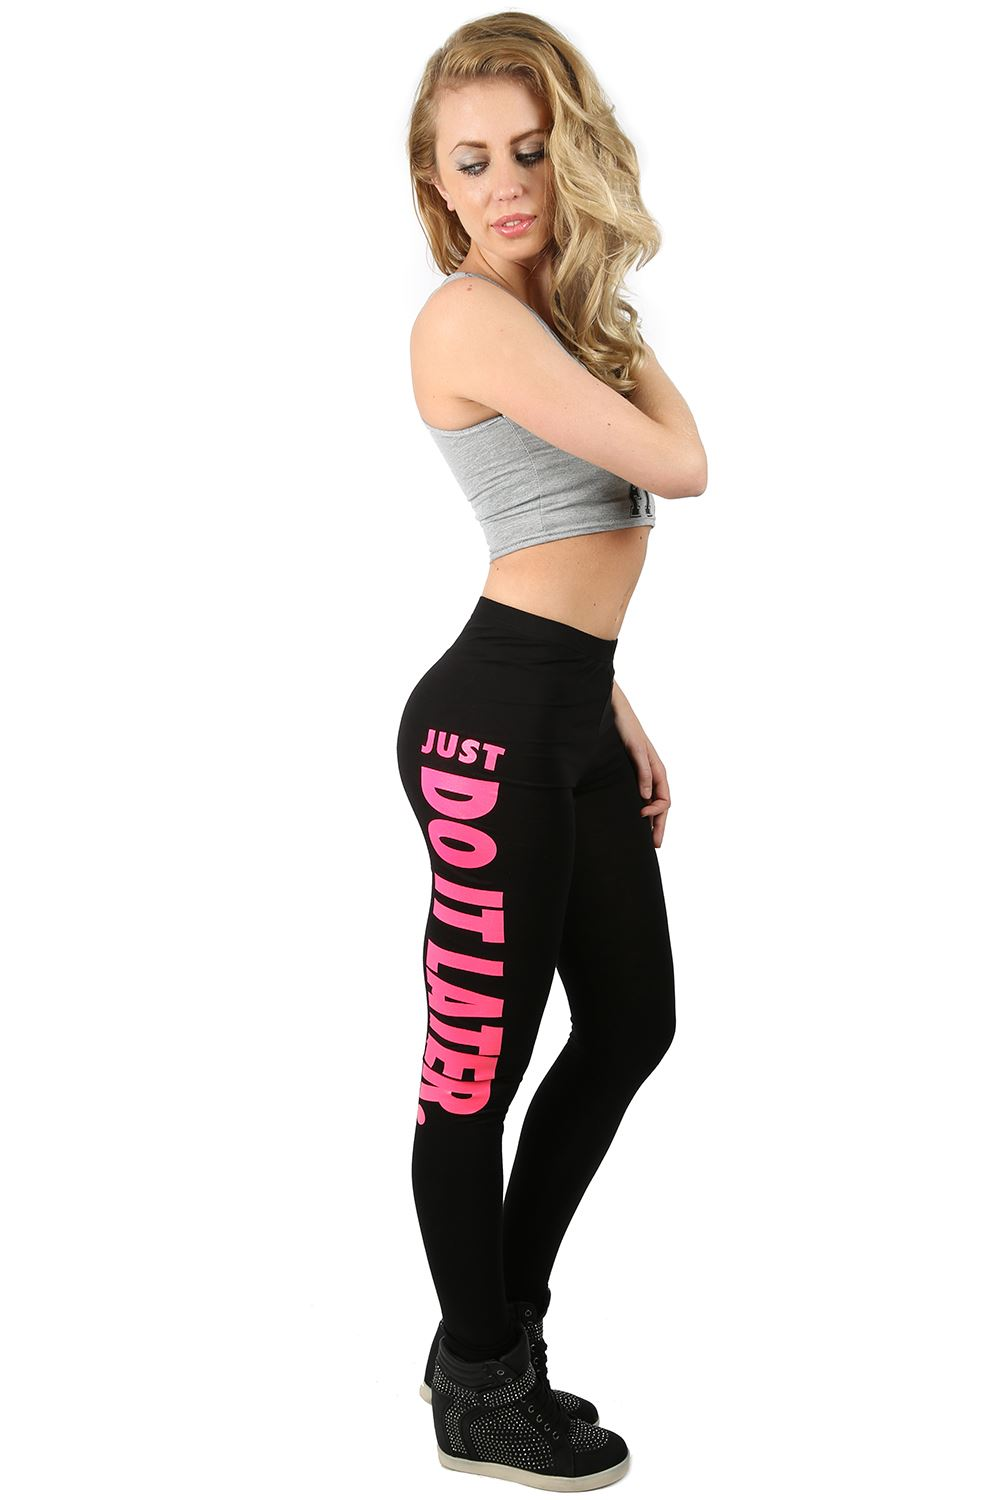 Leggings are a staple in many women's wardrobe. They can act as an accent to an outfit or a significant part of the ensemble. Trying to find the right pair for you out of all the leggings out on the market, however, can be a frustrating task.